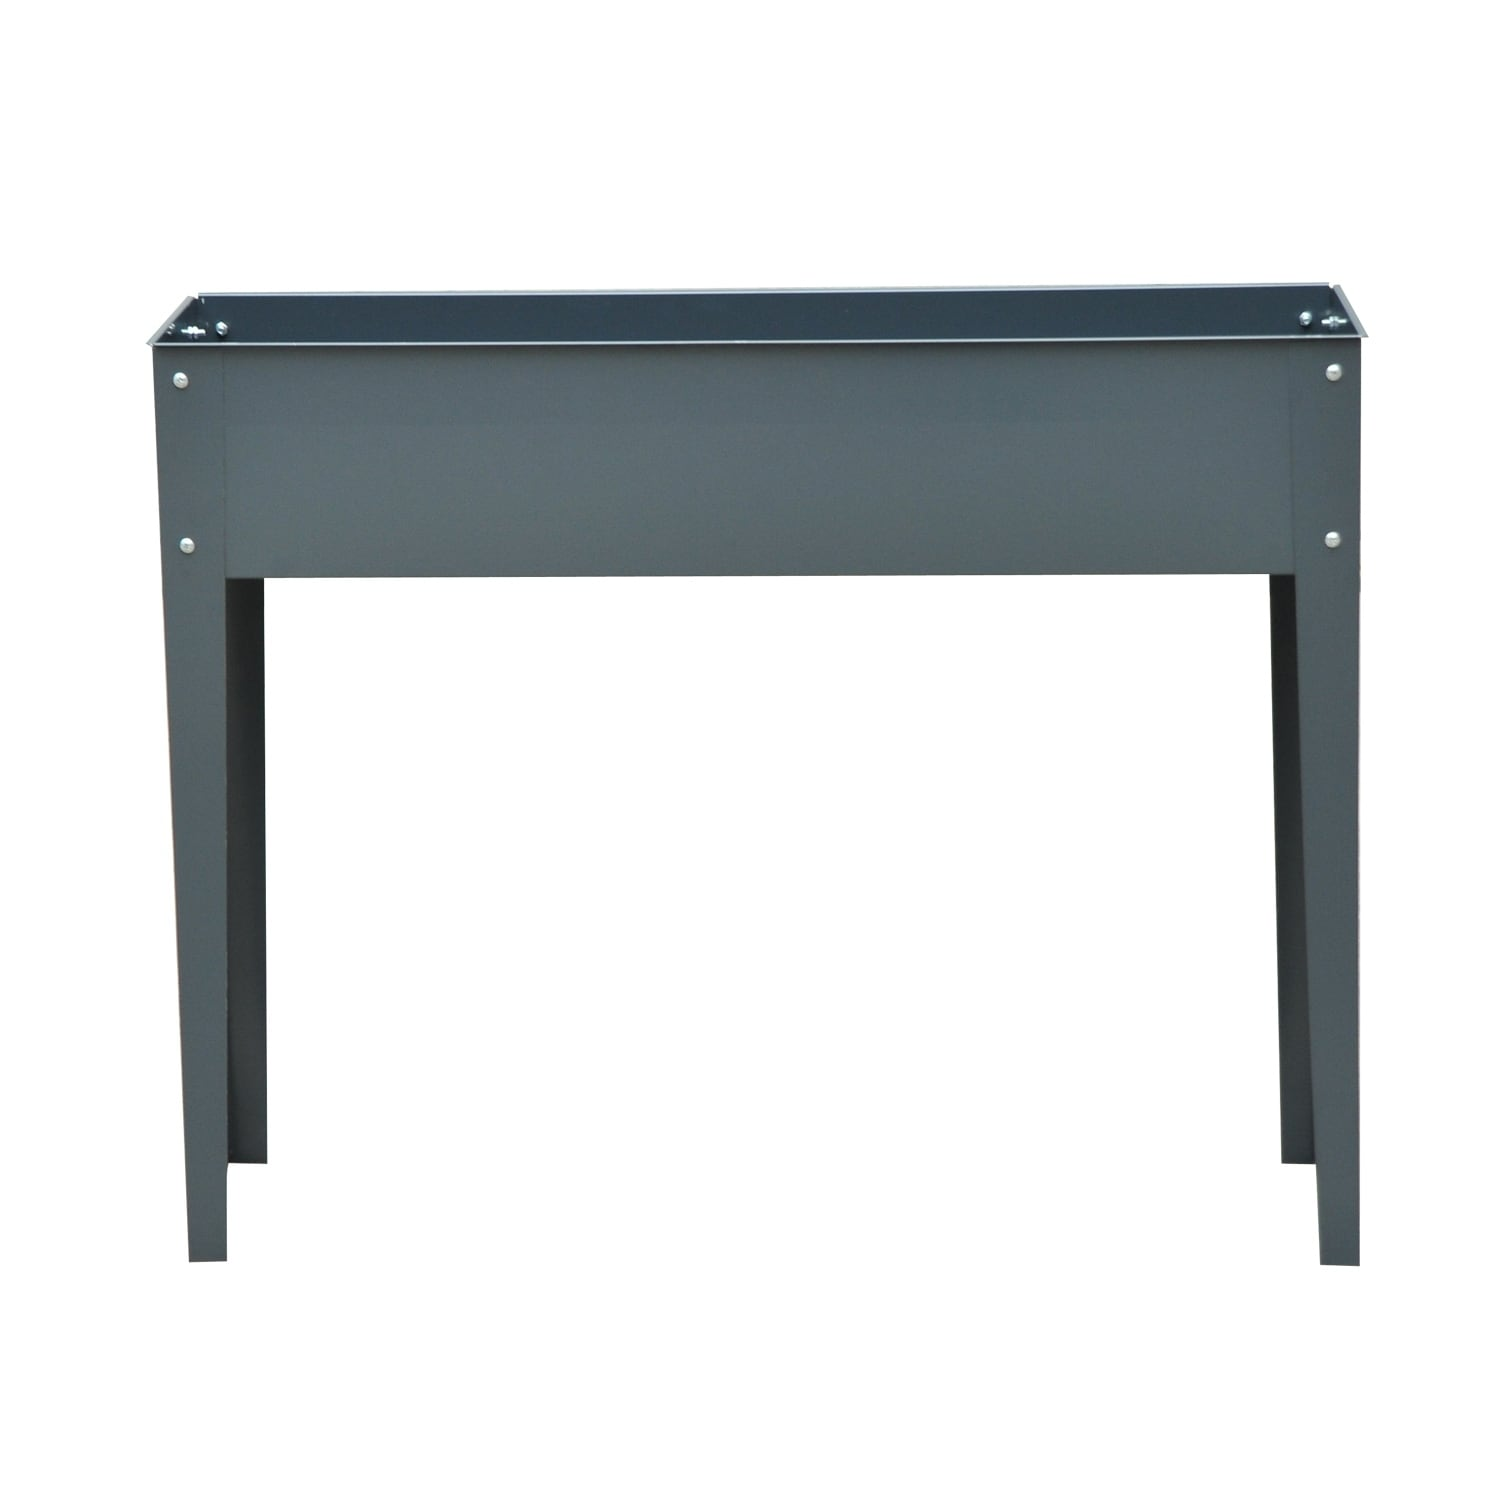 Shop Outsunny 40 In X 32 In X 12 In Metal Elevated Garden Bed